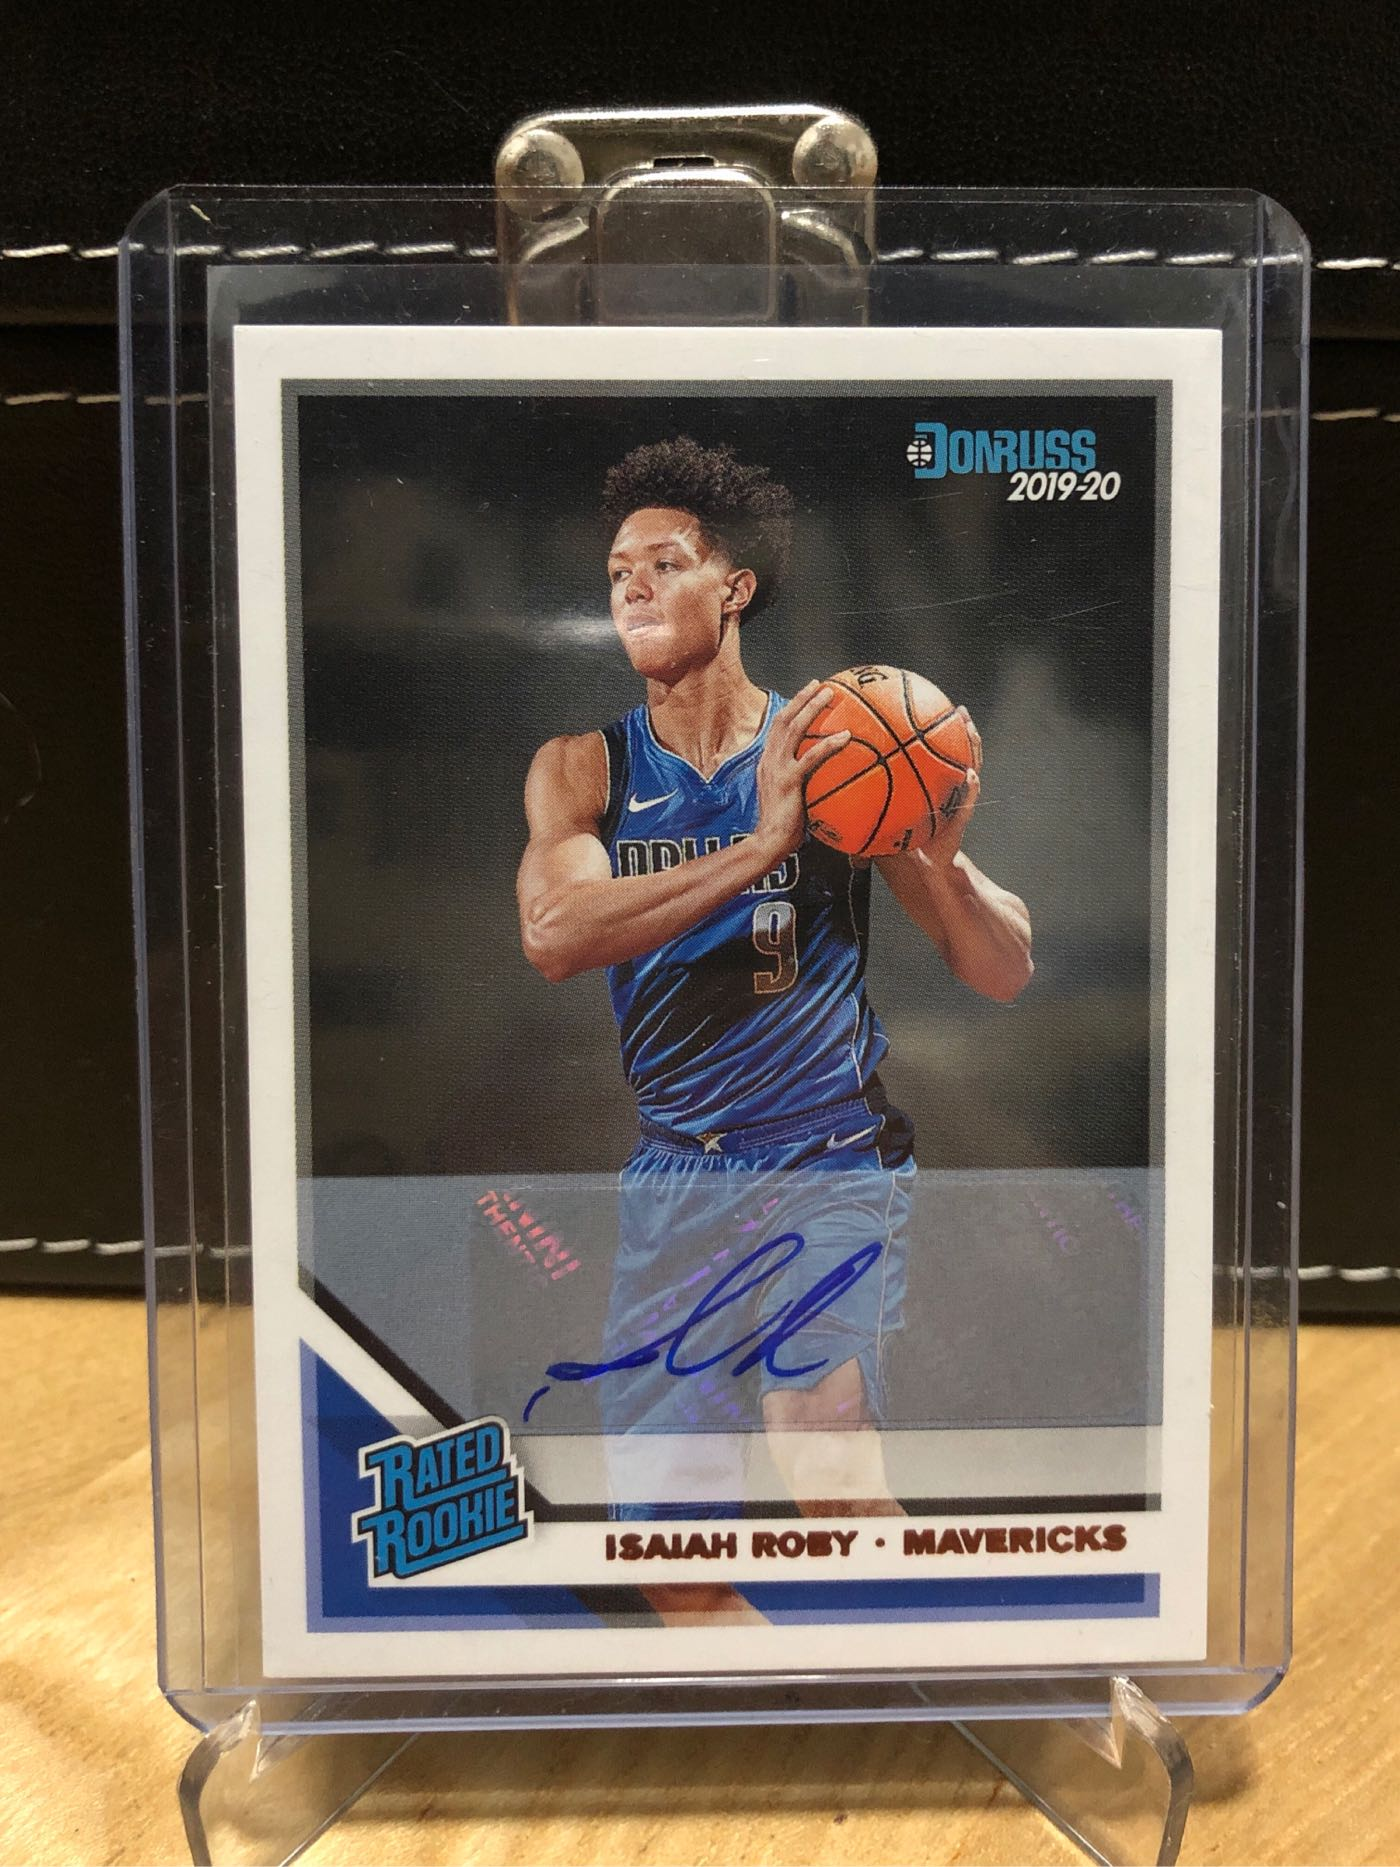 2019-20 Panini Donruss Rated Rookies Signatures Isaiah Roby #235 Rookie Auto